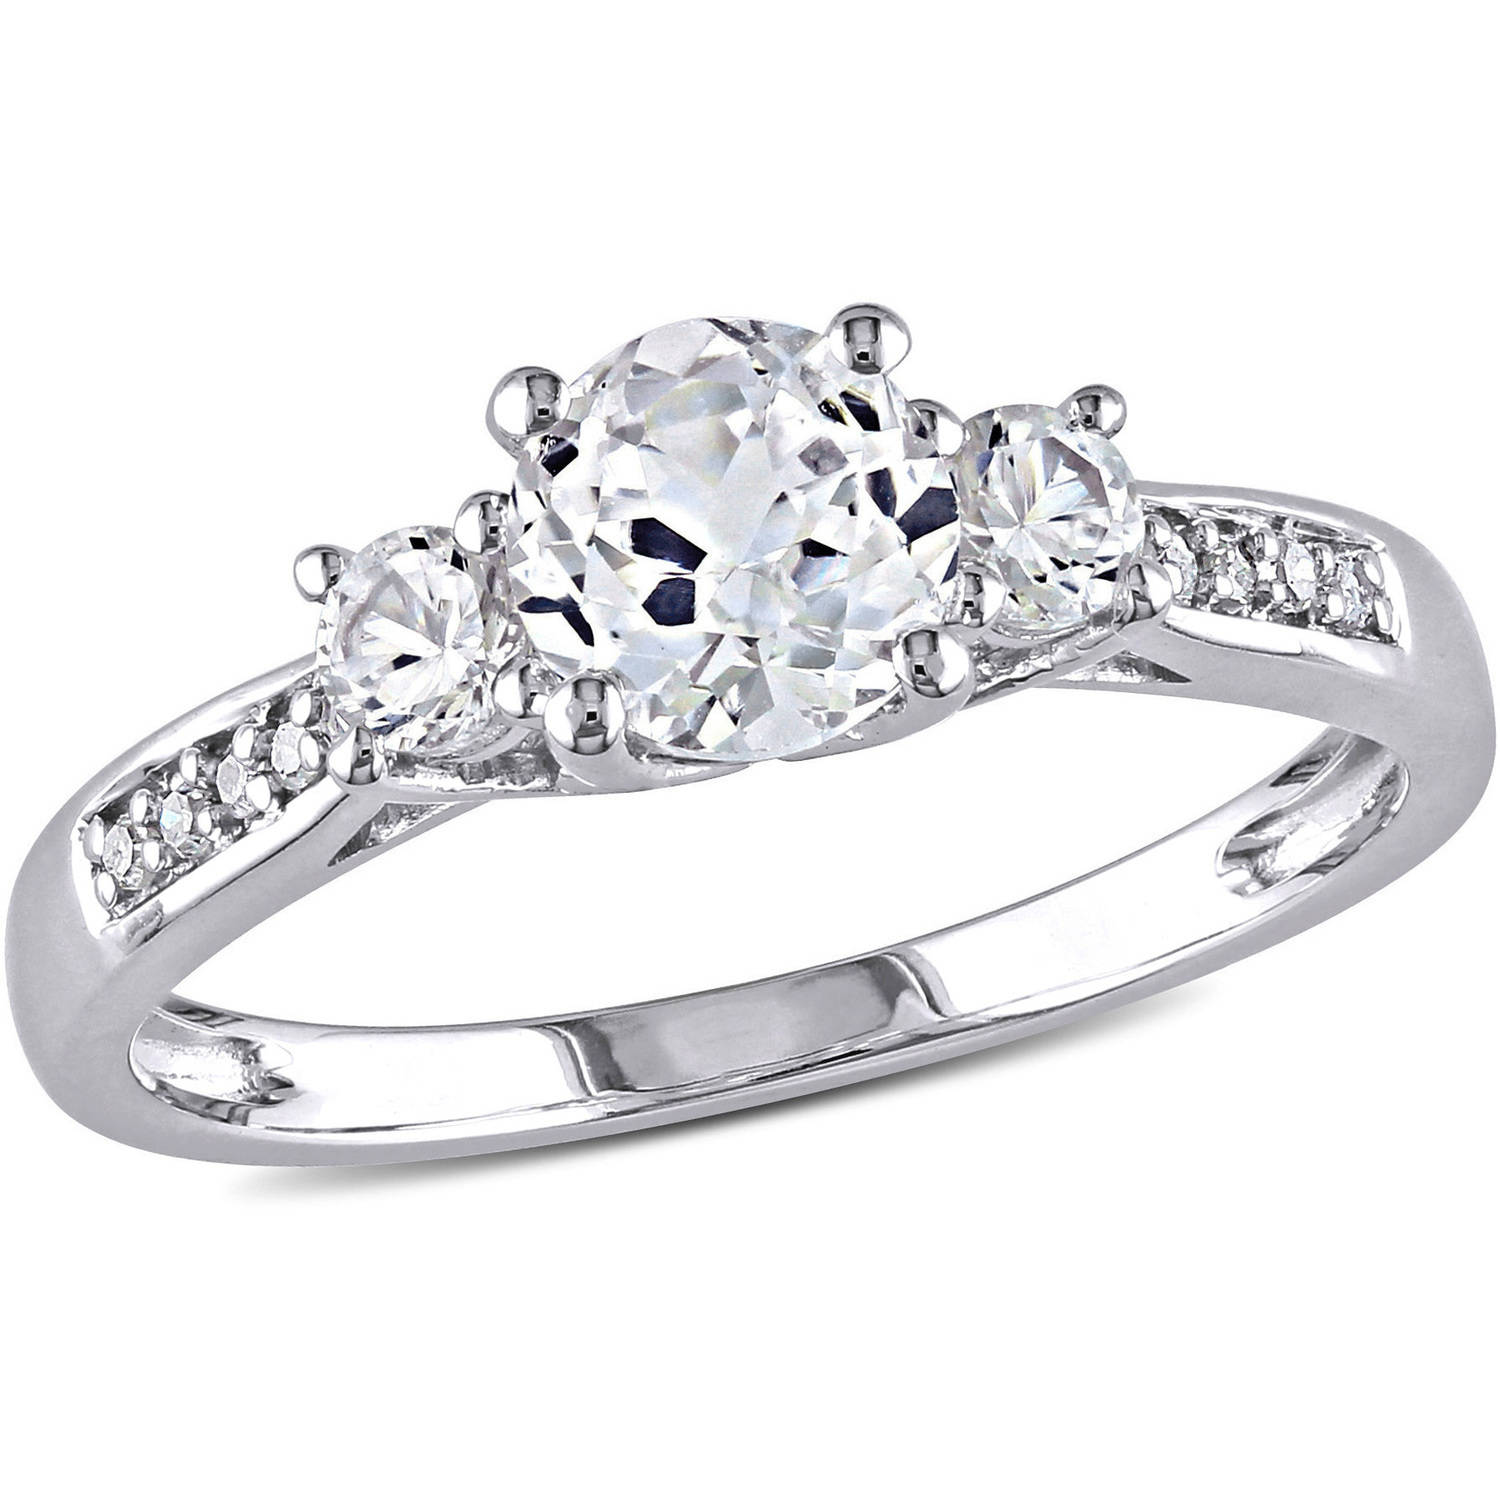 created g walmart bridal engagement en white rings k sapphire set t w ip canada tgw carat miabella gold